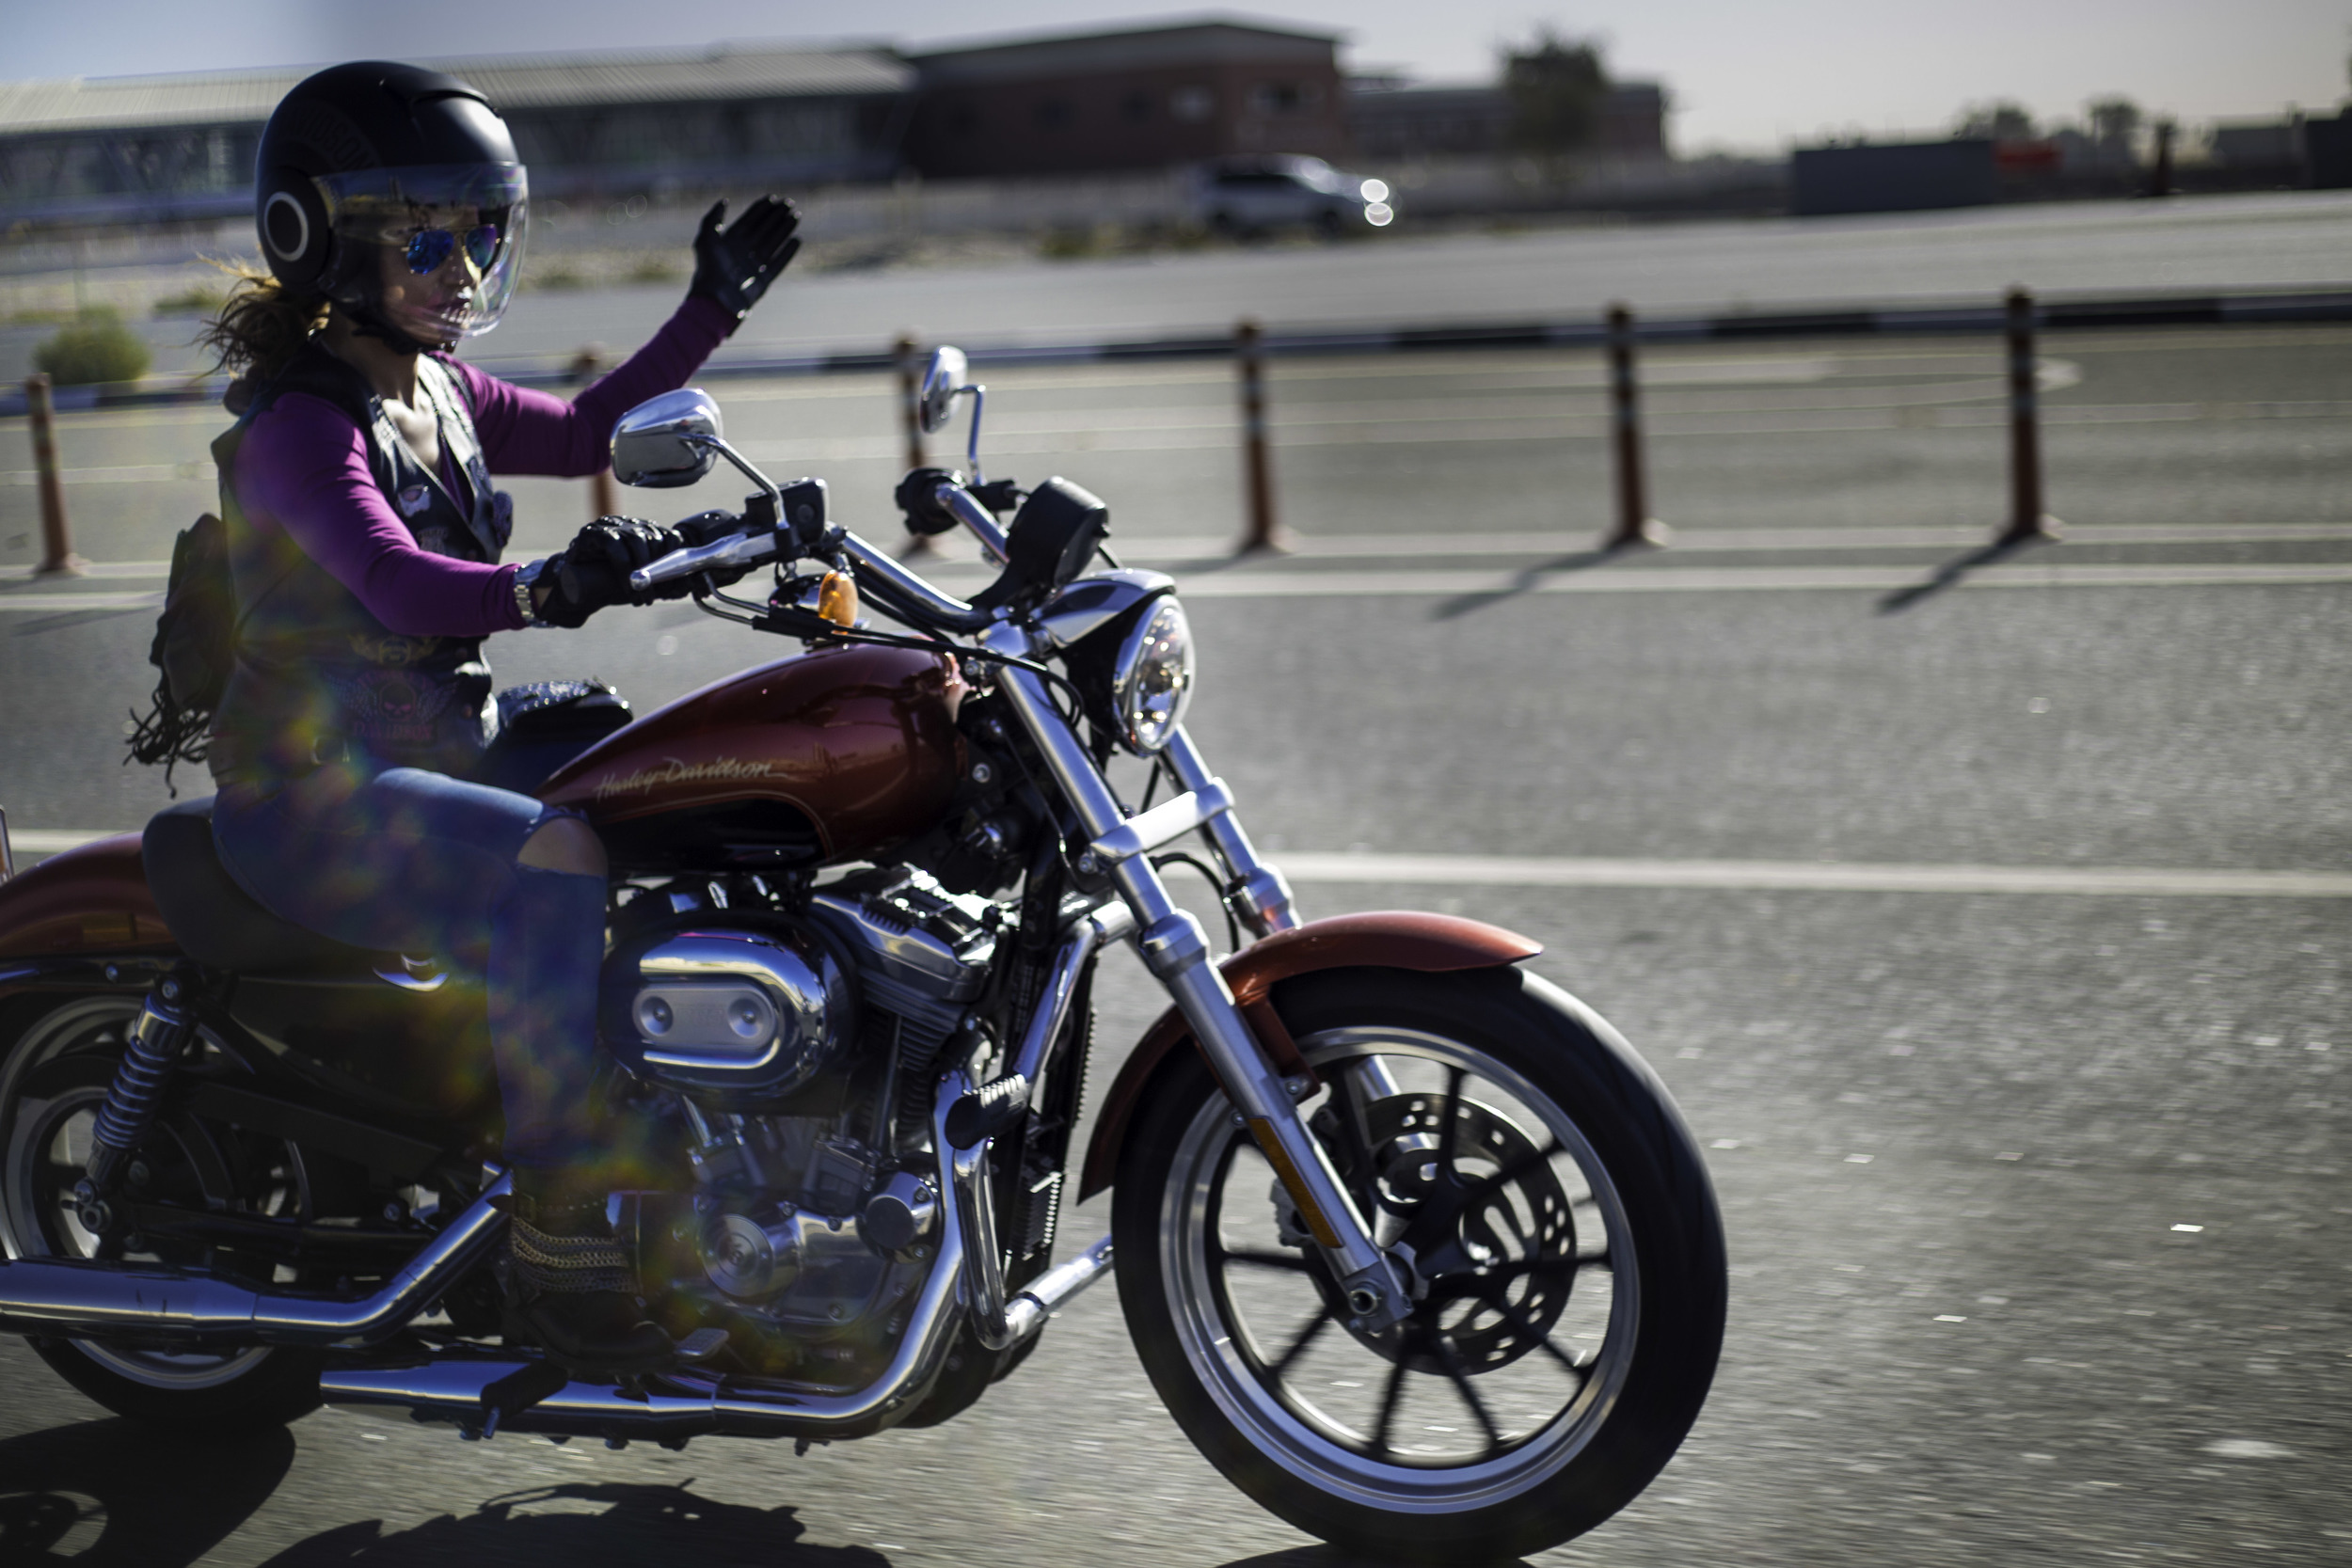 Sun glints as the women hit the road on International Female Ride Day.jpg